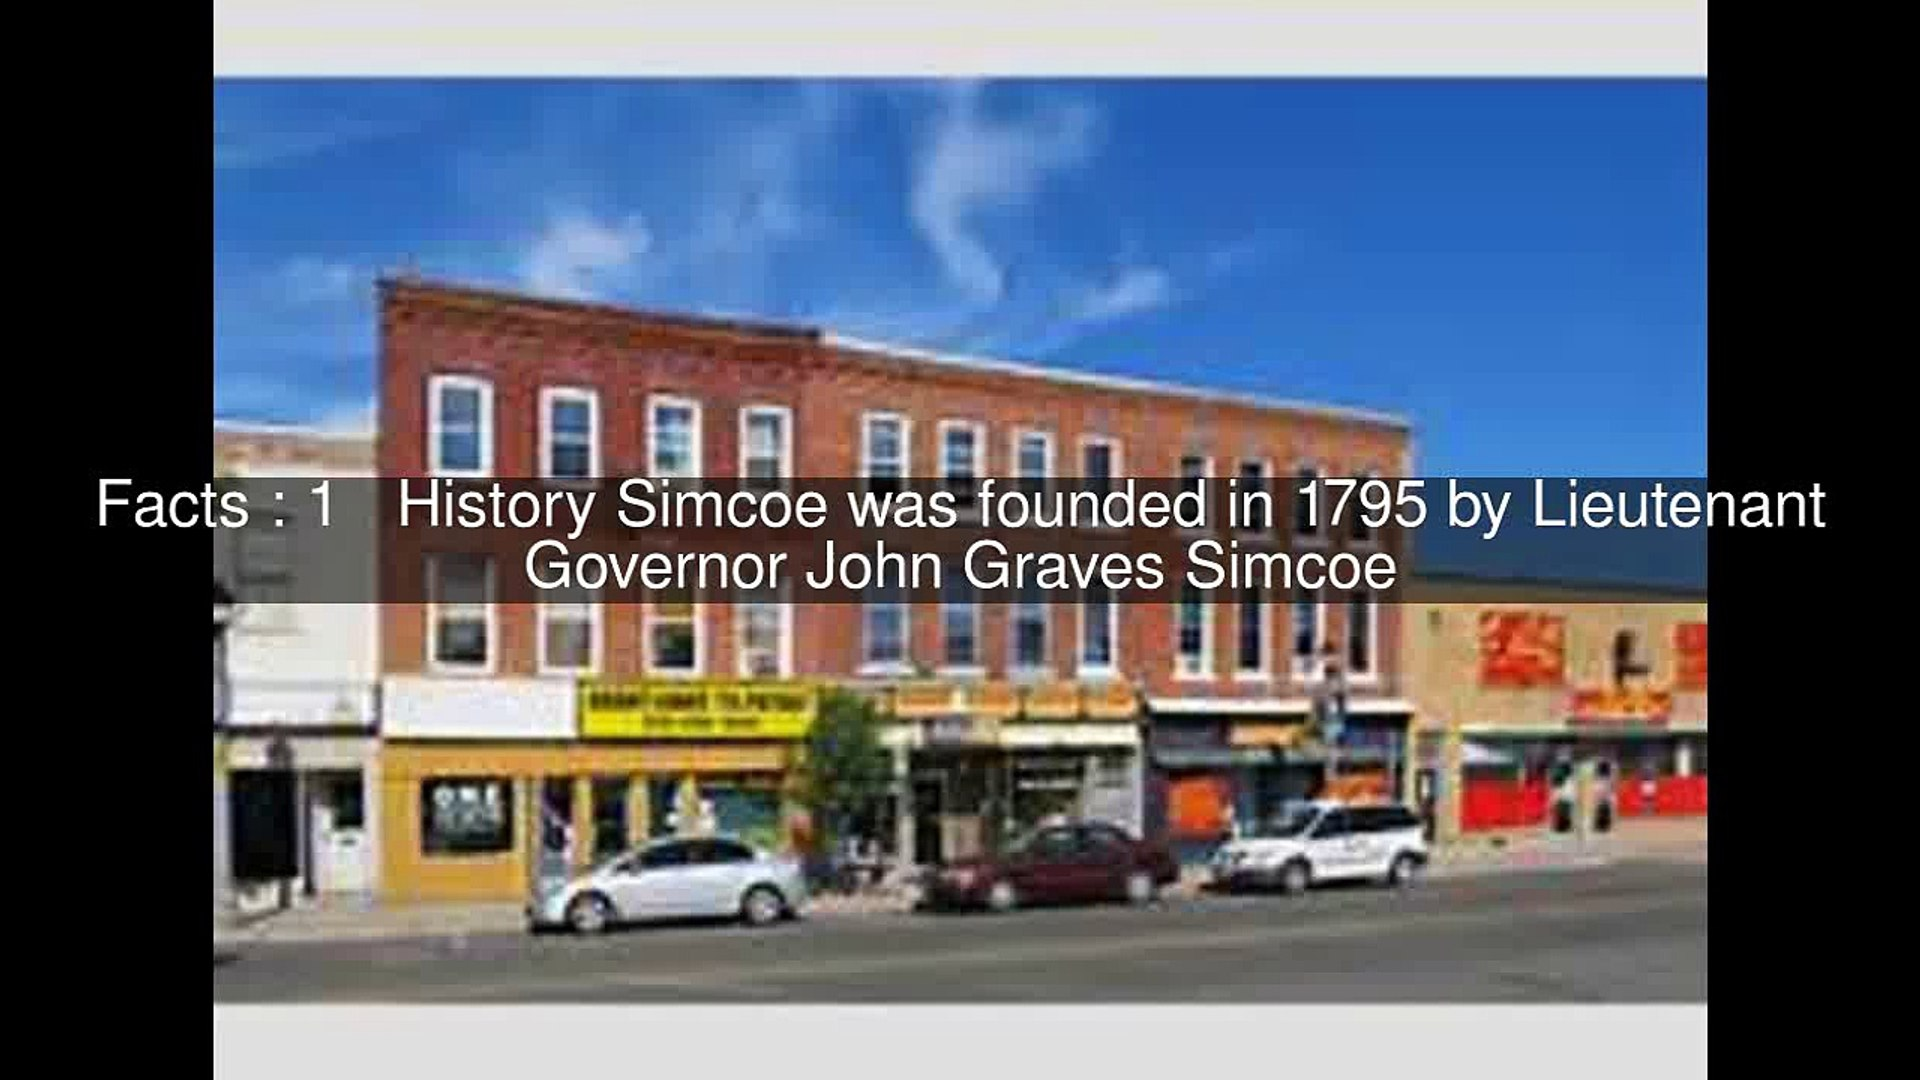 History of Simcoe, Ontario Top 8 Facts